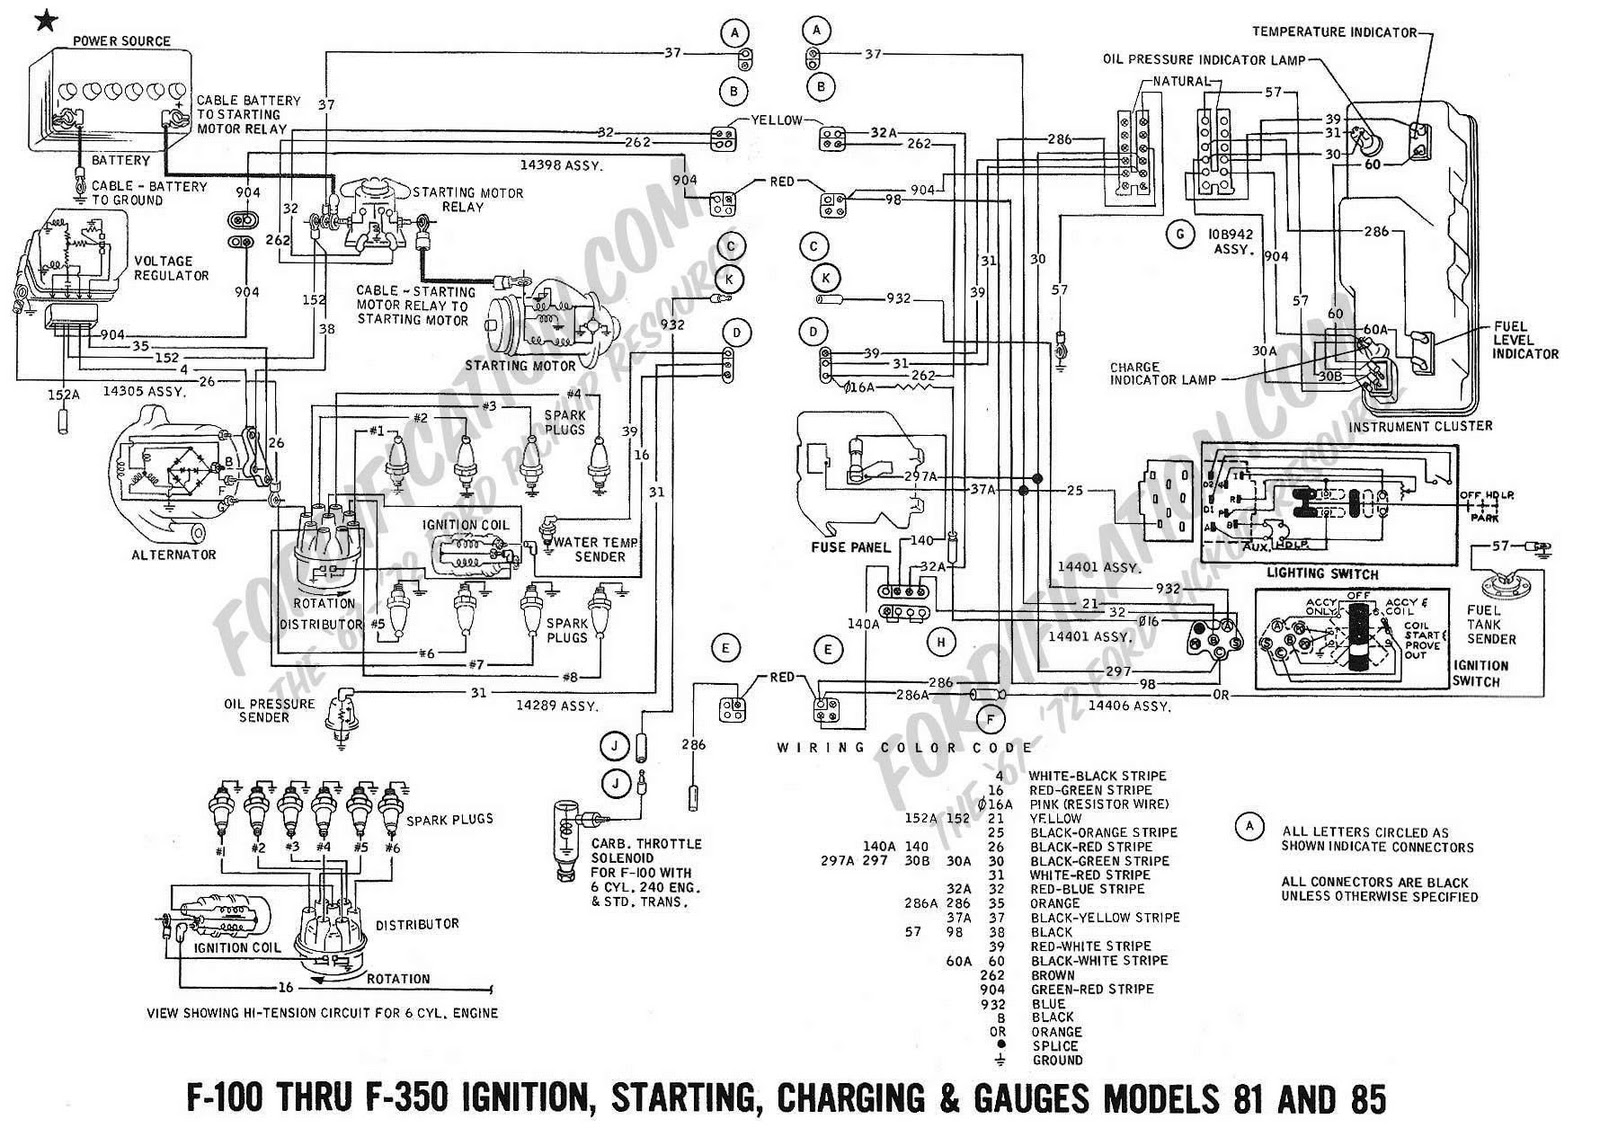 1996 Peterbilt Wiring Diagram. 1996. Free Wiring Diagrams